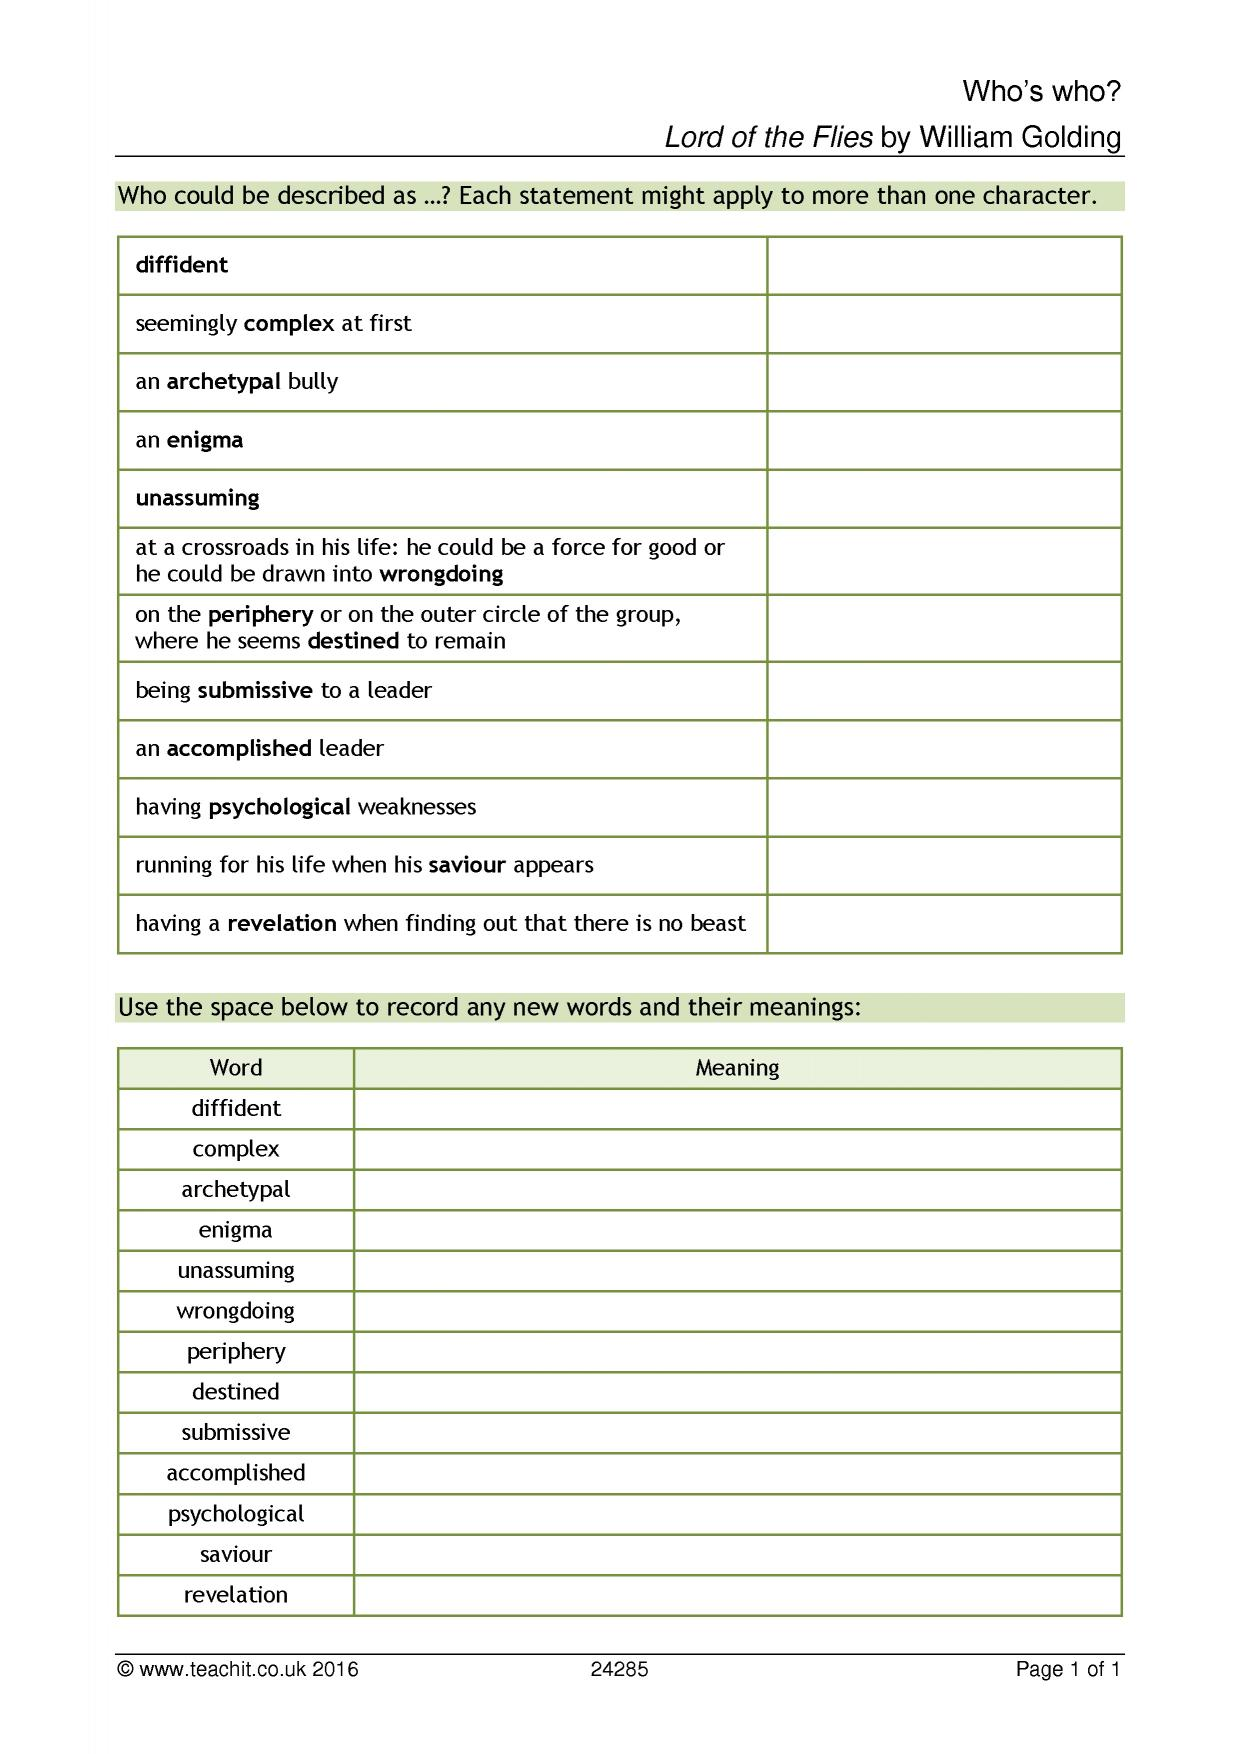 worksheet The Catcher In The Rye Worksheets ks4 lord of the flies by william golding teachit english 1 preview